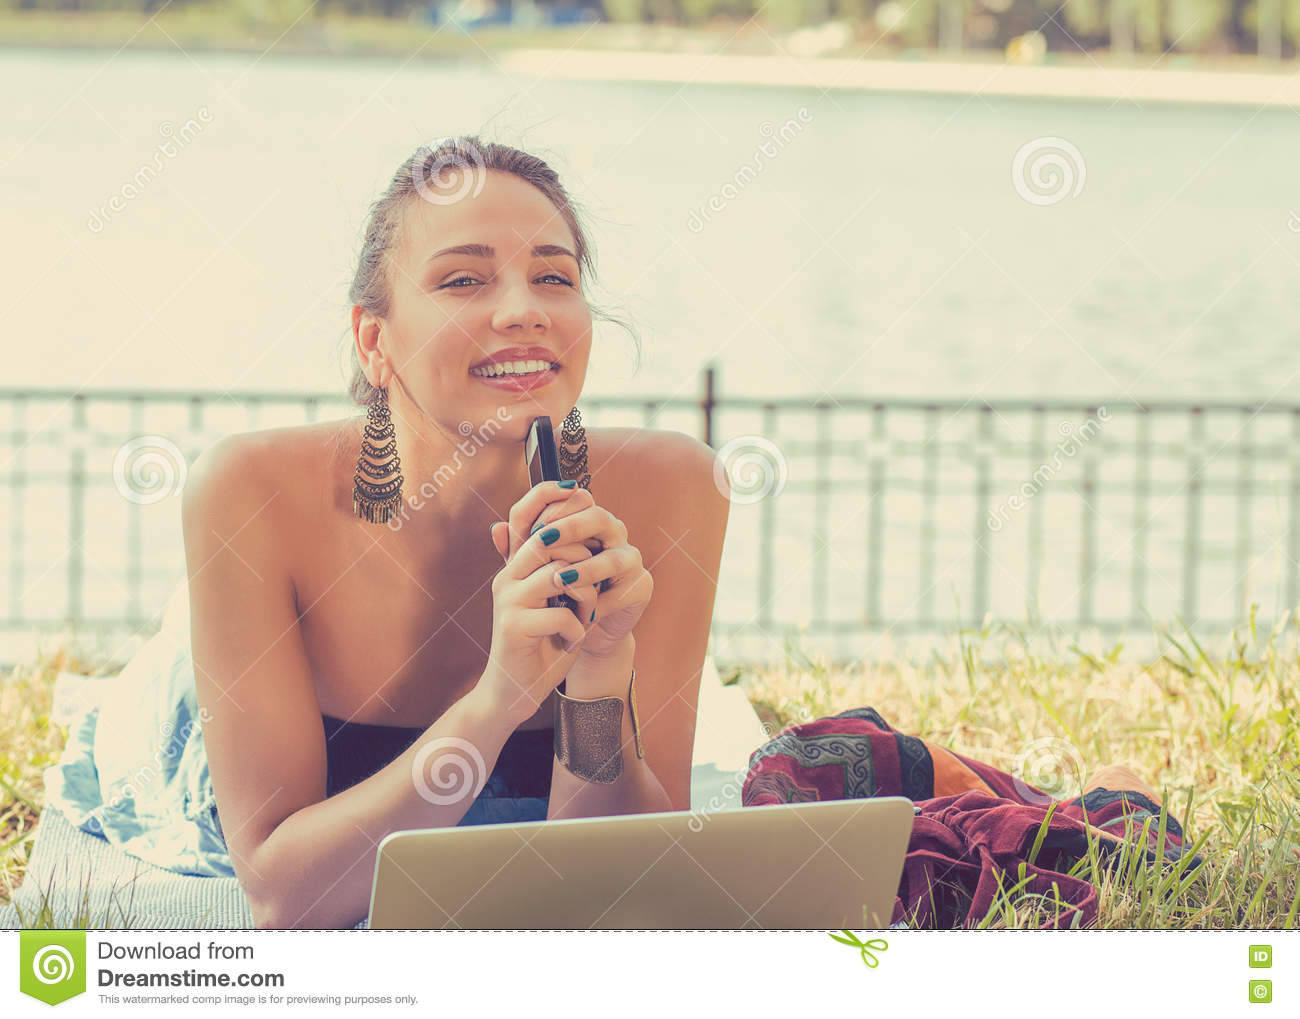 Happy woman with laptop computer and mobile phone relaxing in a park